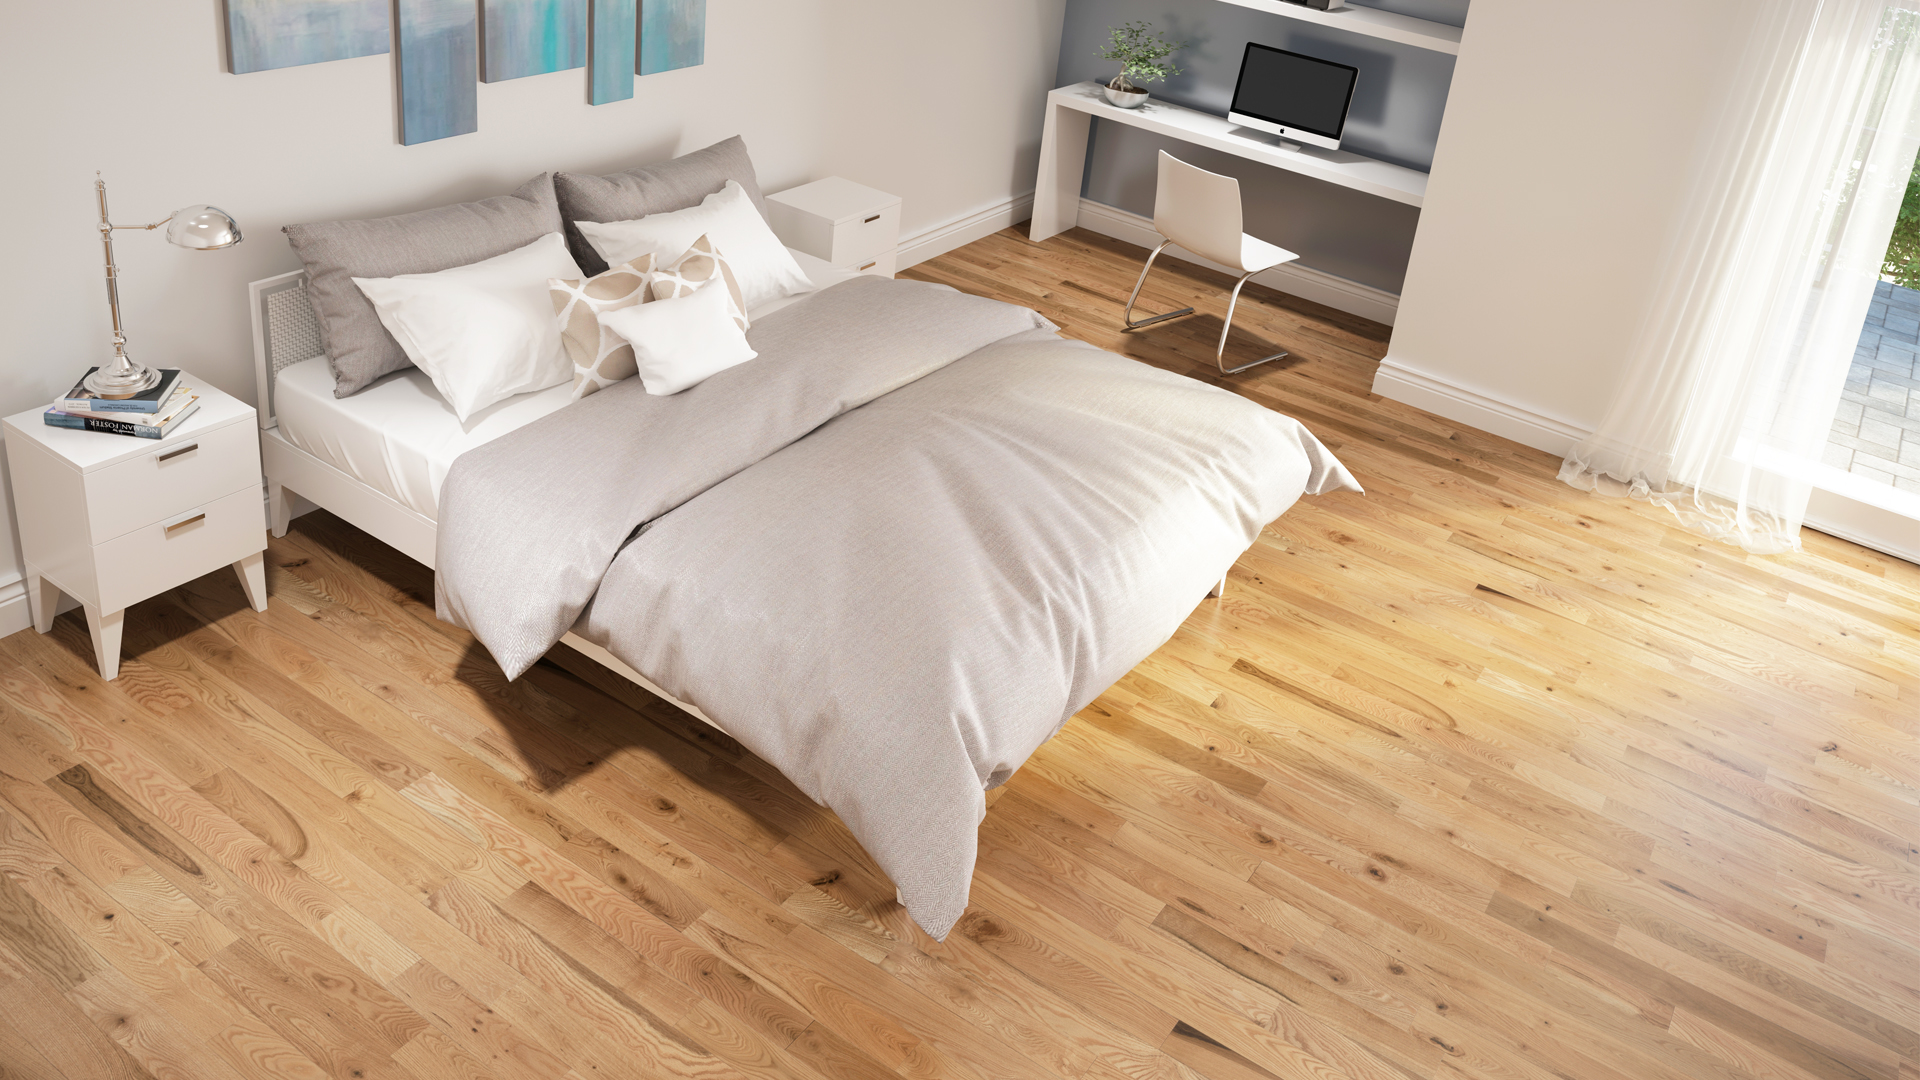 Red oak natural | Dubeau hardwood floors | Bedroom decor